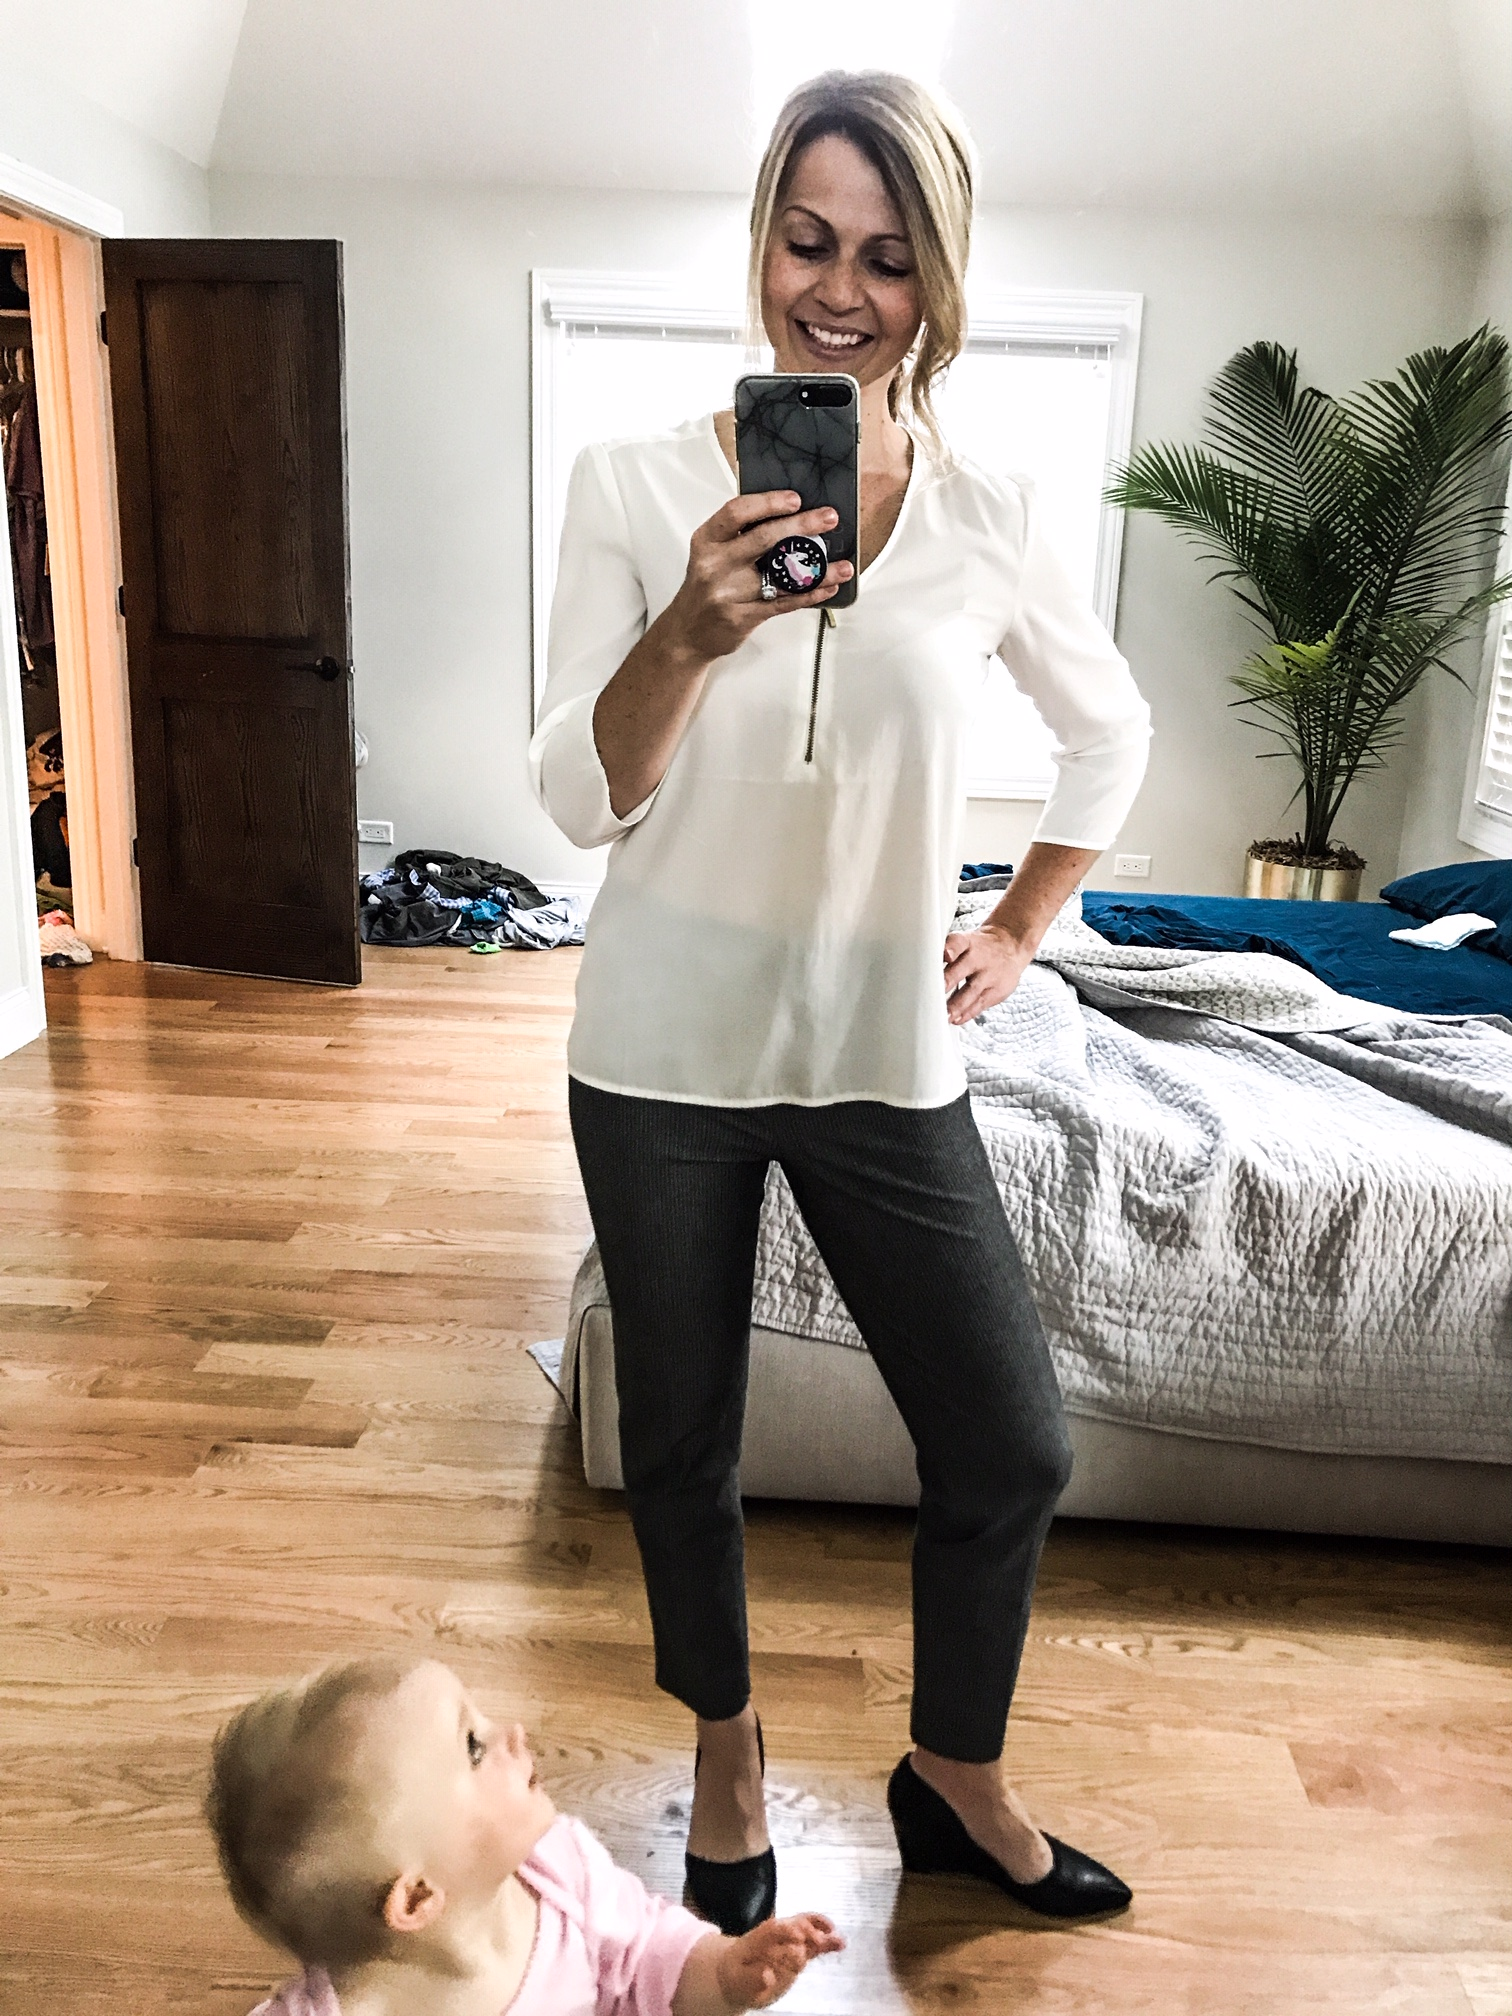 How To Bounce Back After Having Two Children. Fit4Mom Body Back. Getting back into workouts and healthy eating after having kids. #sponsored #fit4mom #bodyback